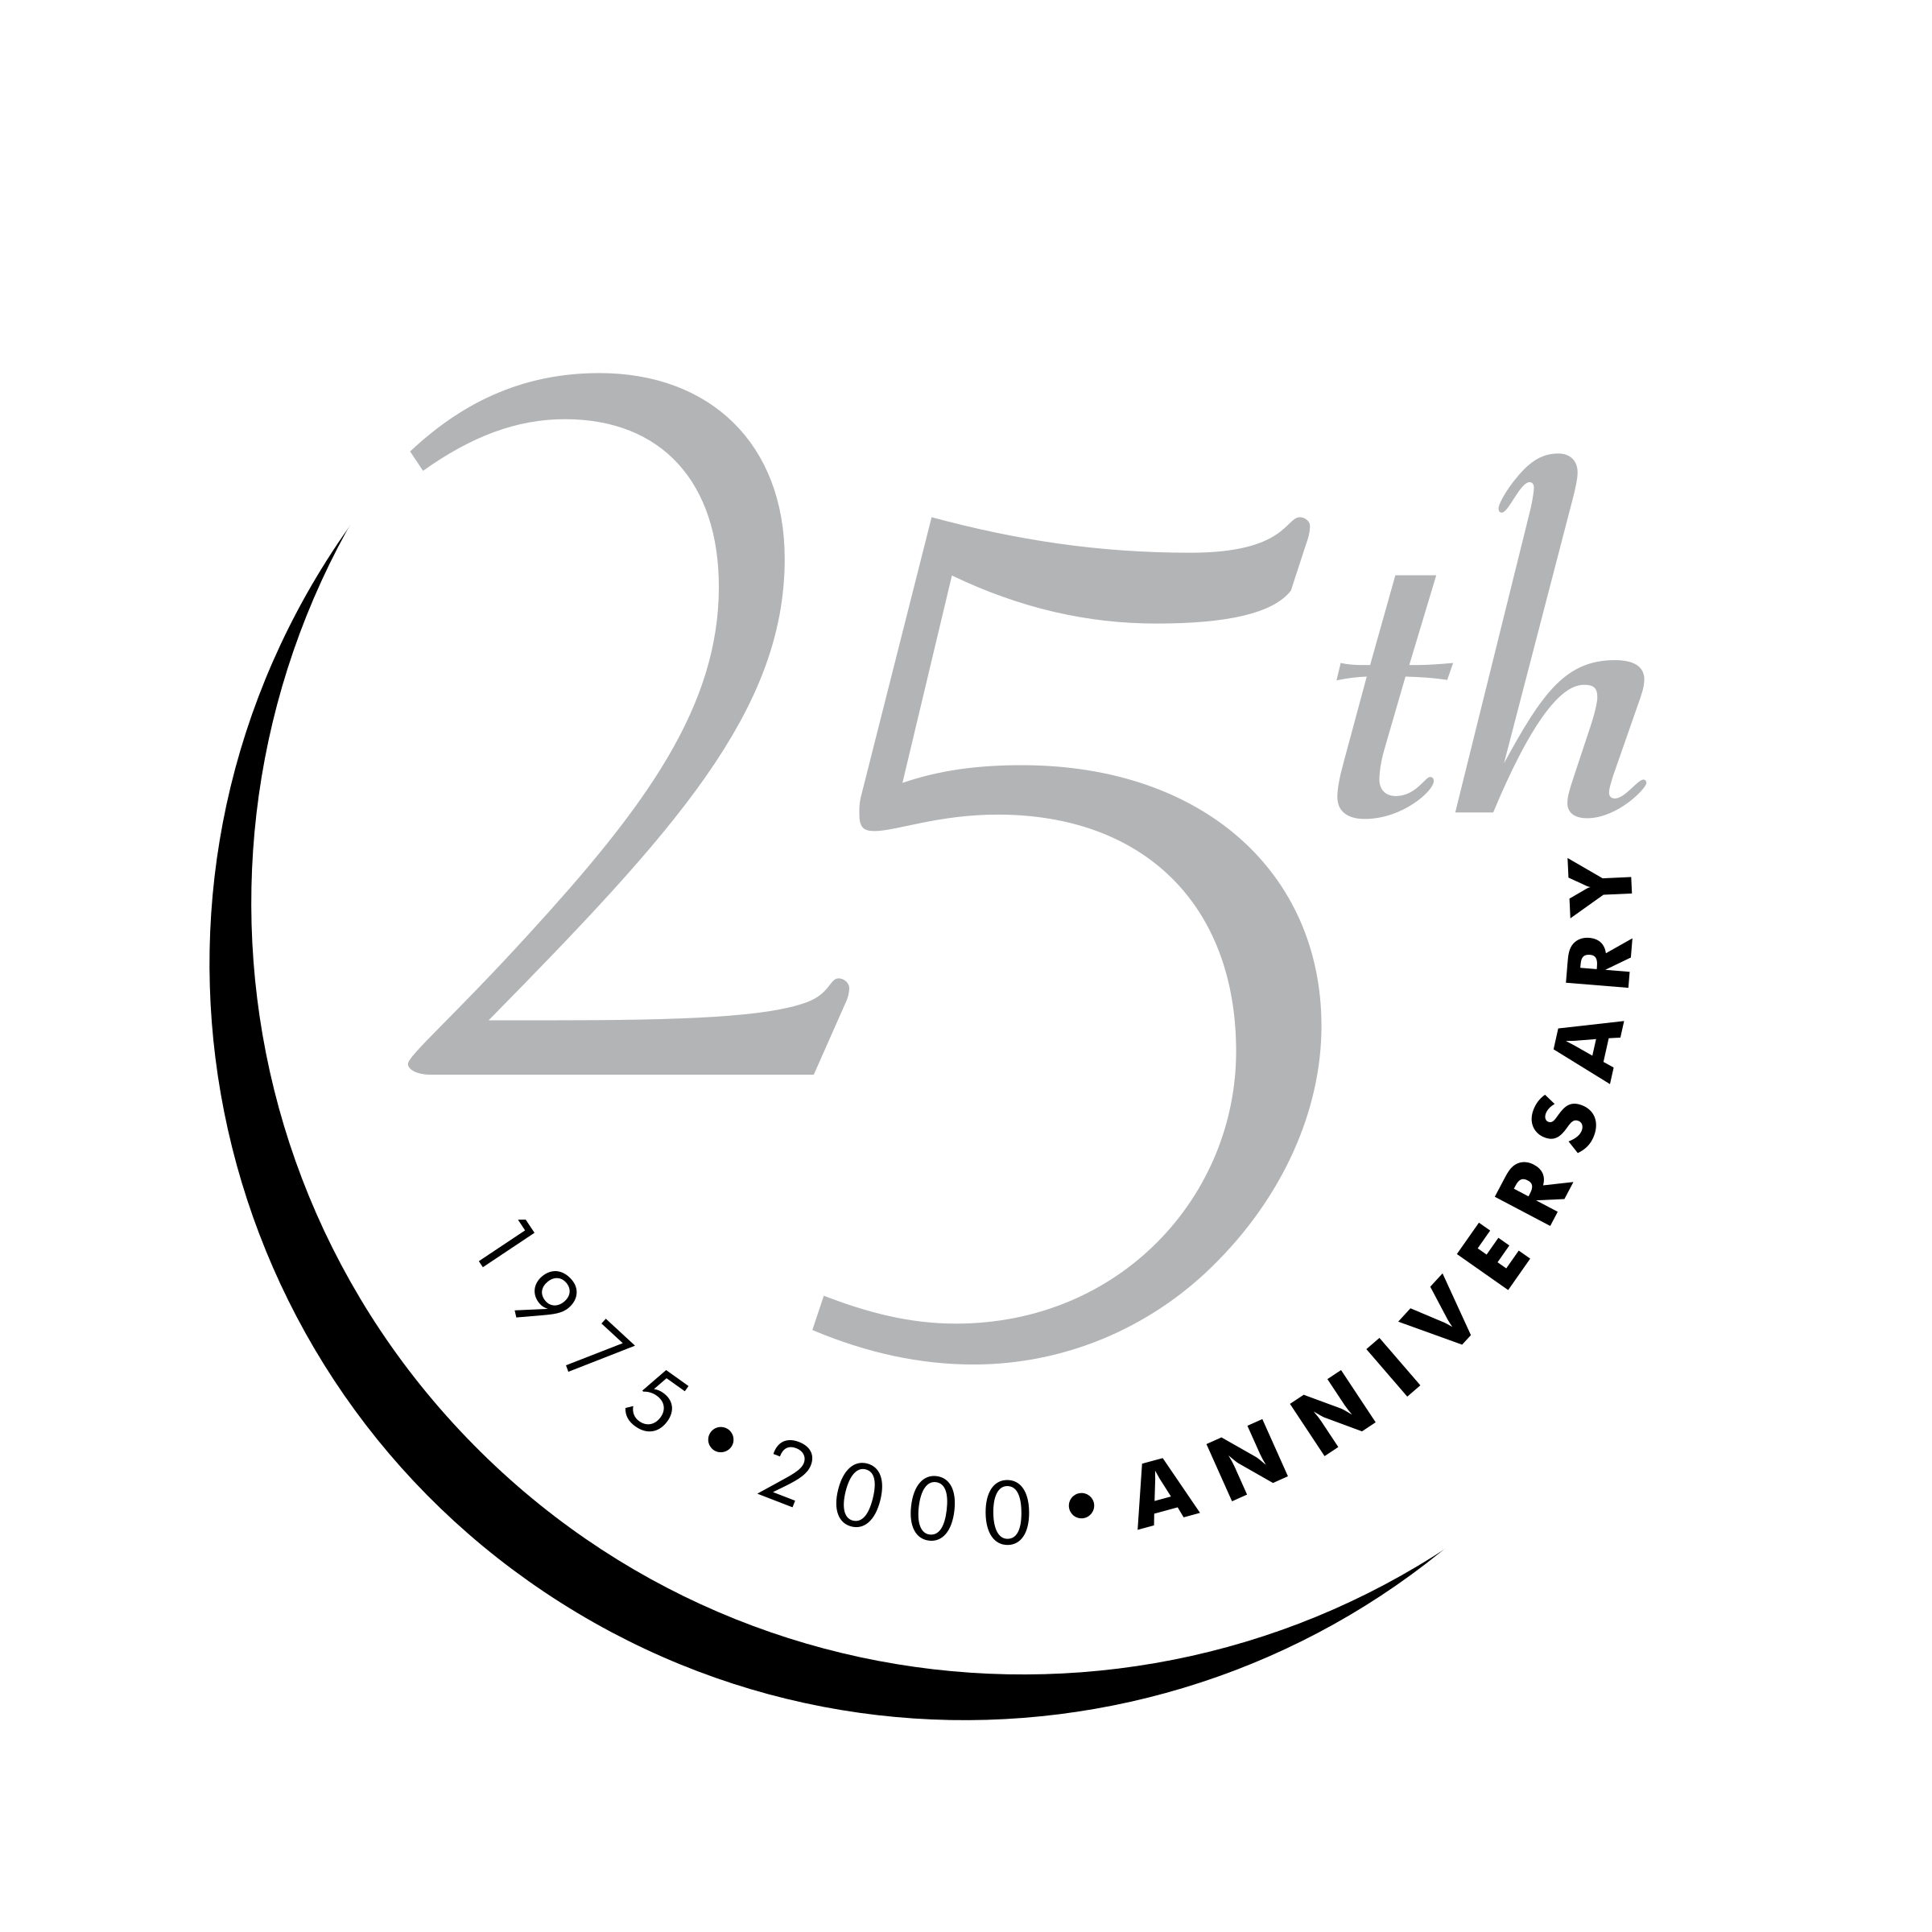 25th Anniversary Logo Png Transparent & Svg Vector.